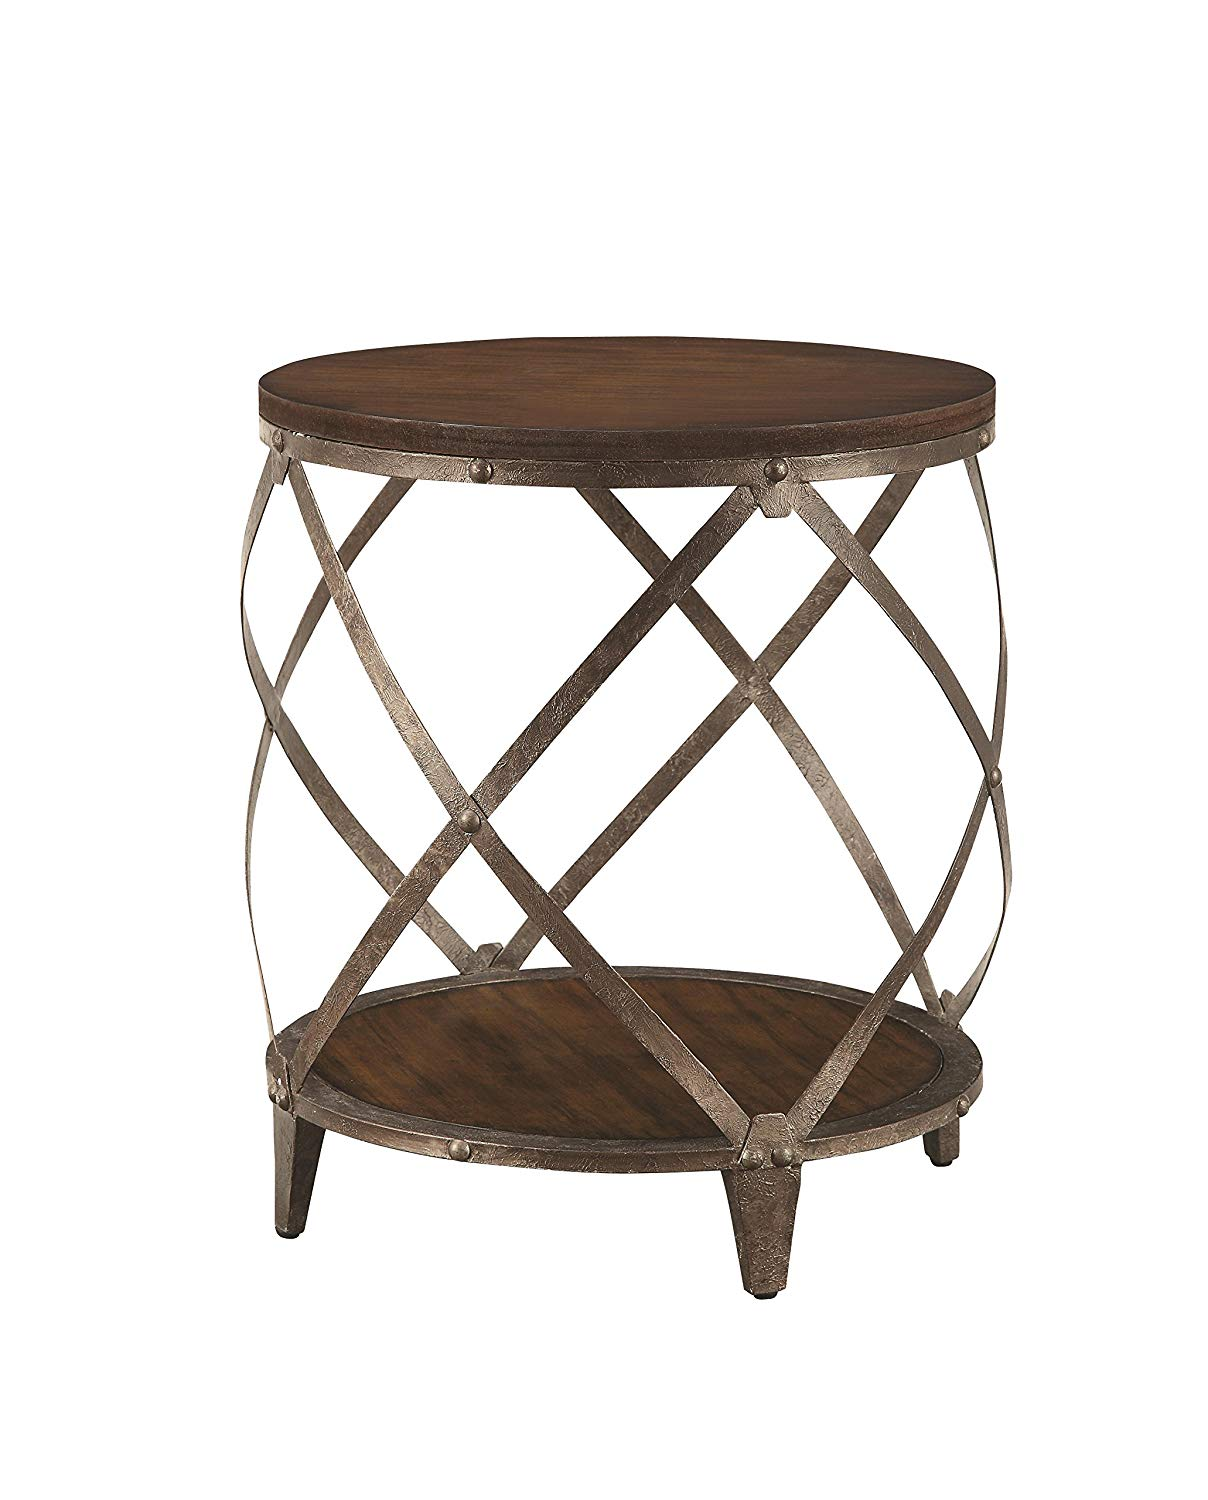 metal accent table with drum shape brown kitchen dining outdoor woven threshold nautical decor barnwood bar small corner ikea shabby chic chest drawers coastal living lamps top